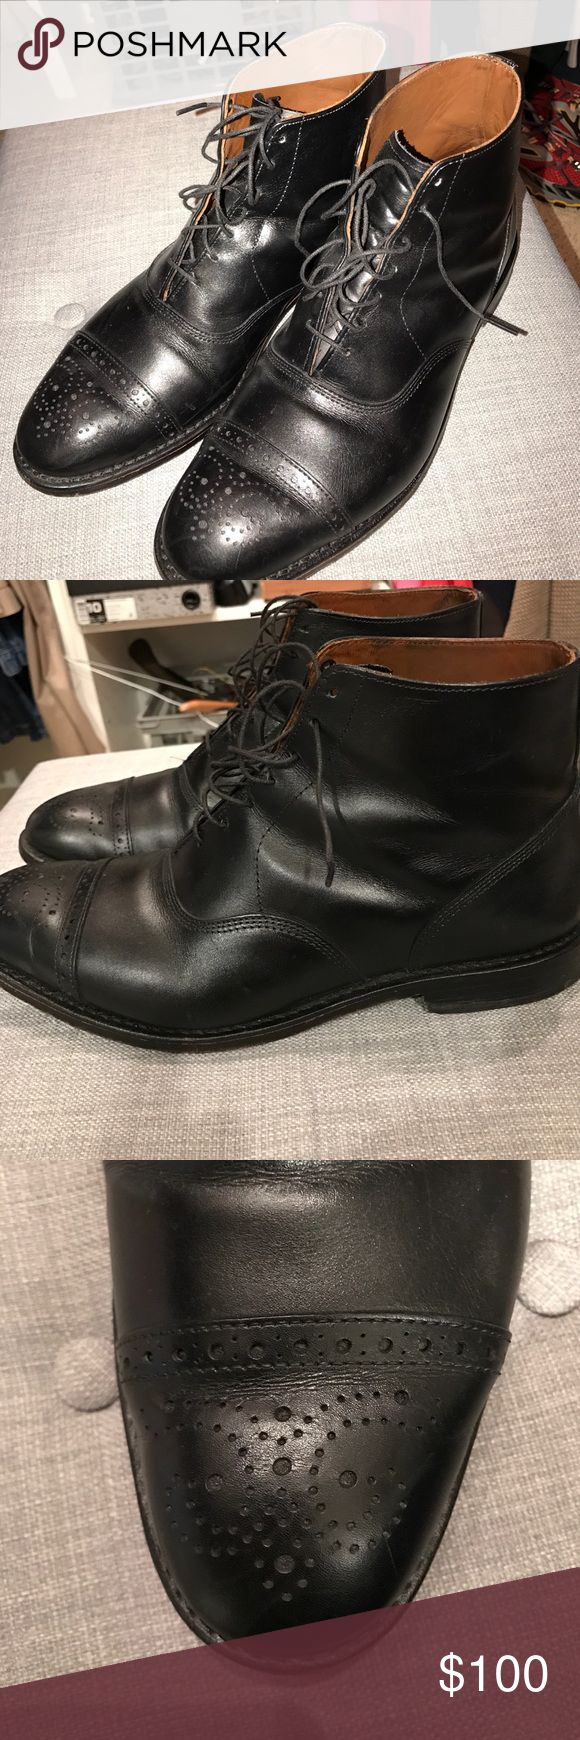 Allen Edmonds Fifth Street Dress Shoes Size 8.5 E Stand out in these unique high top dress shoes from Allen Edmonds. Great condition black leather. Wax coated sole provides weather protection. Allen Edmonds Shoes Oxfords & Derbys